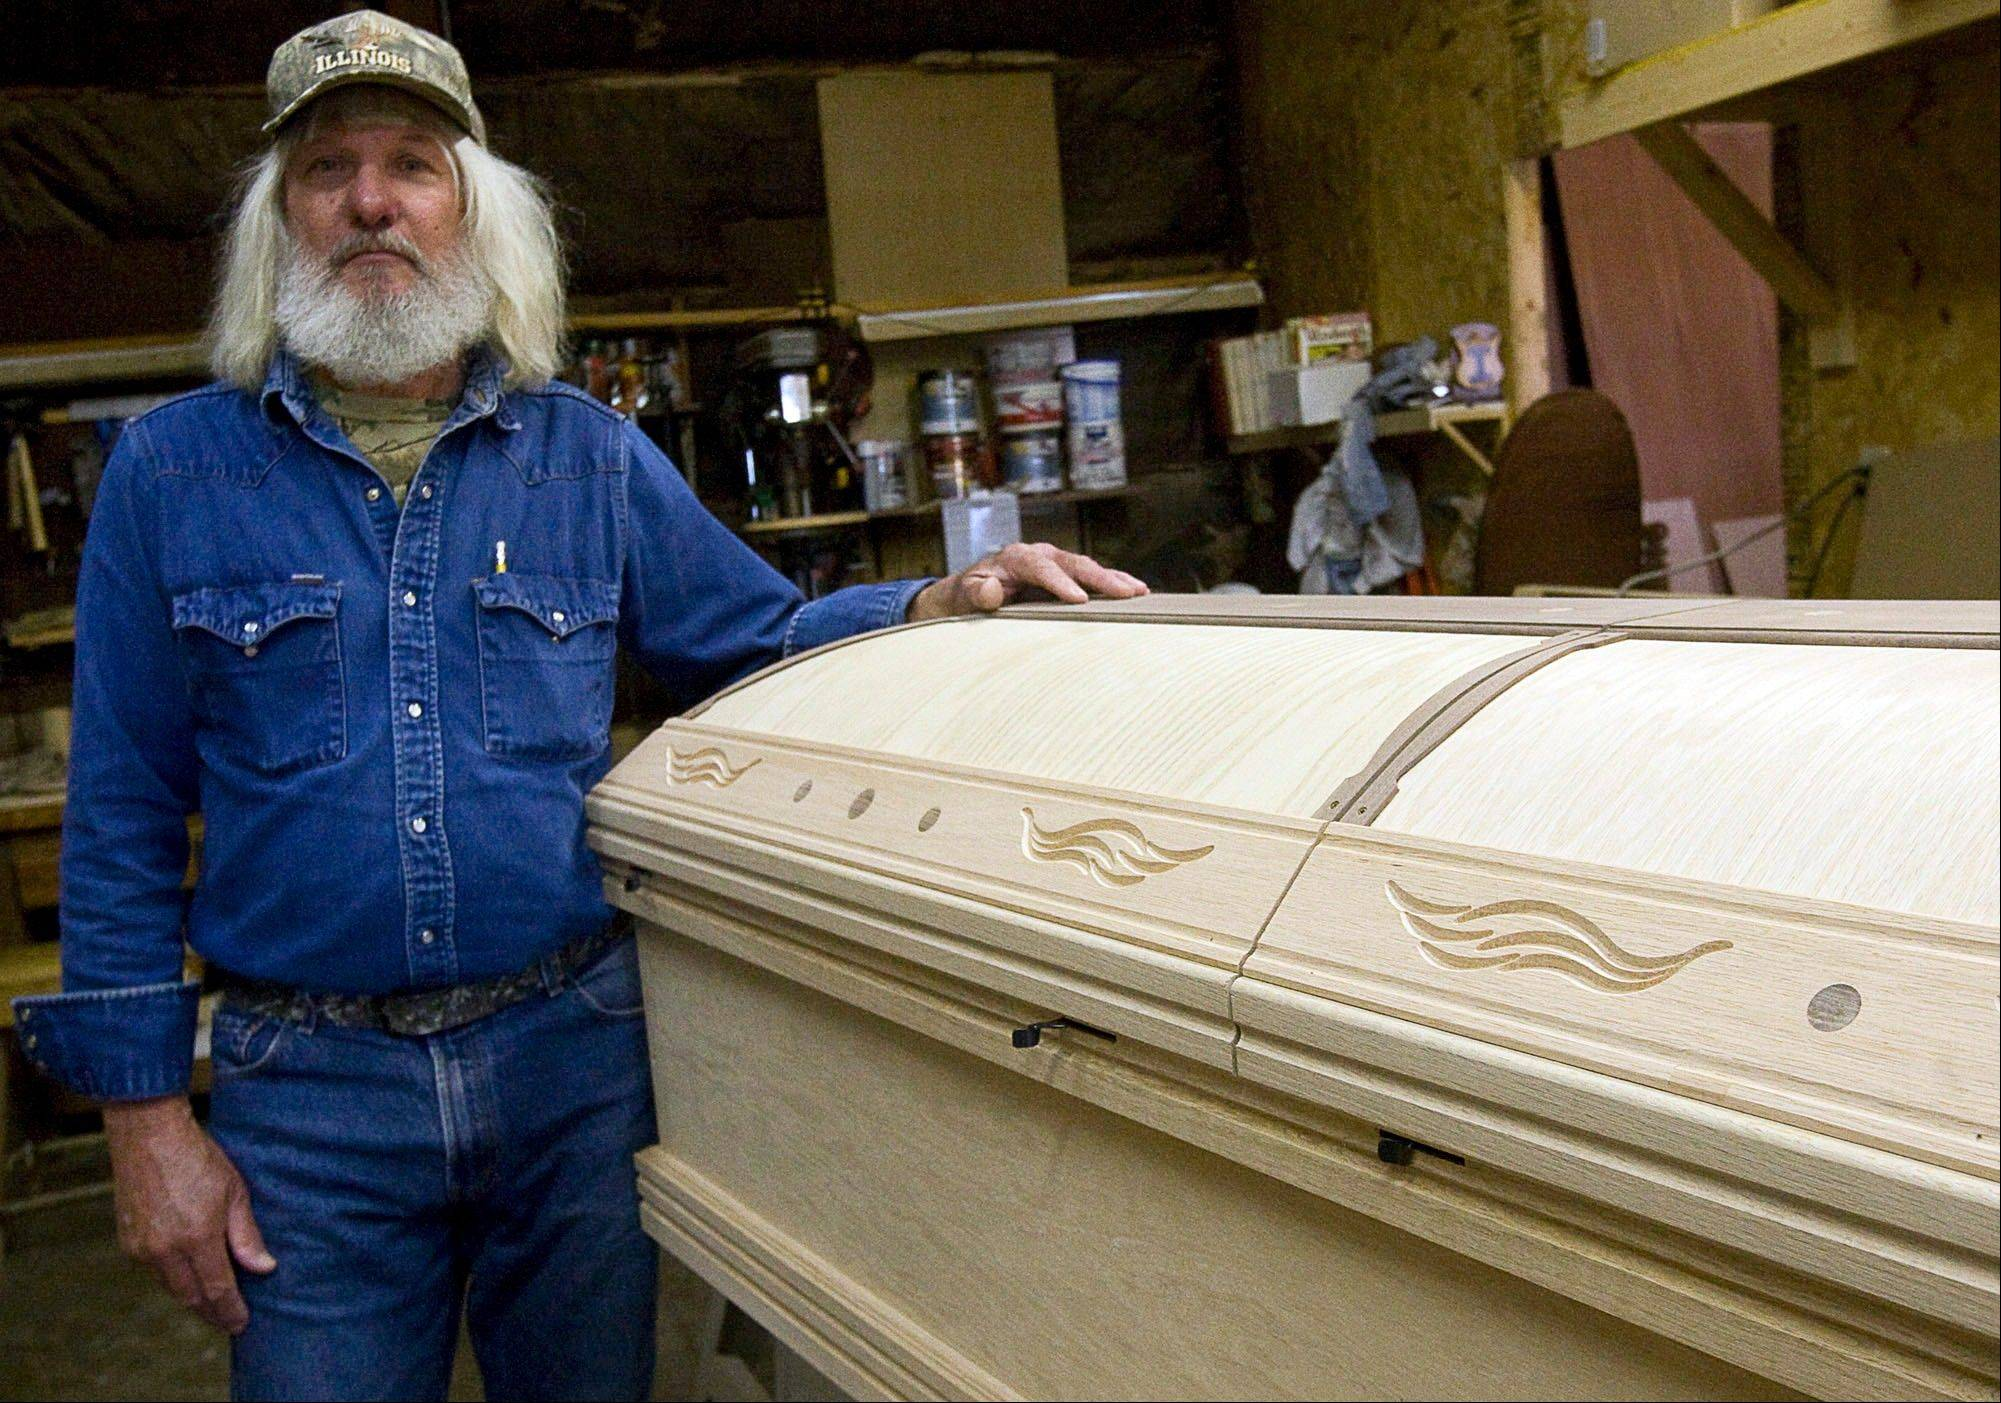 Ed Ikemire, of Findlay, Ill., is making a casket for himself in red oak with walnut trim and inlays.